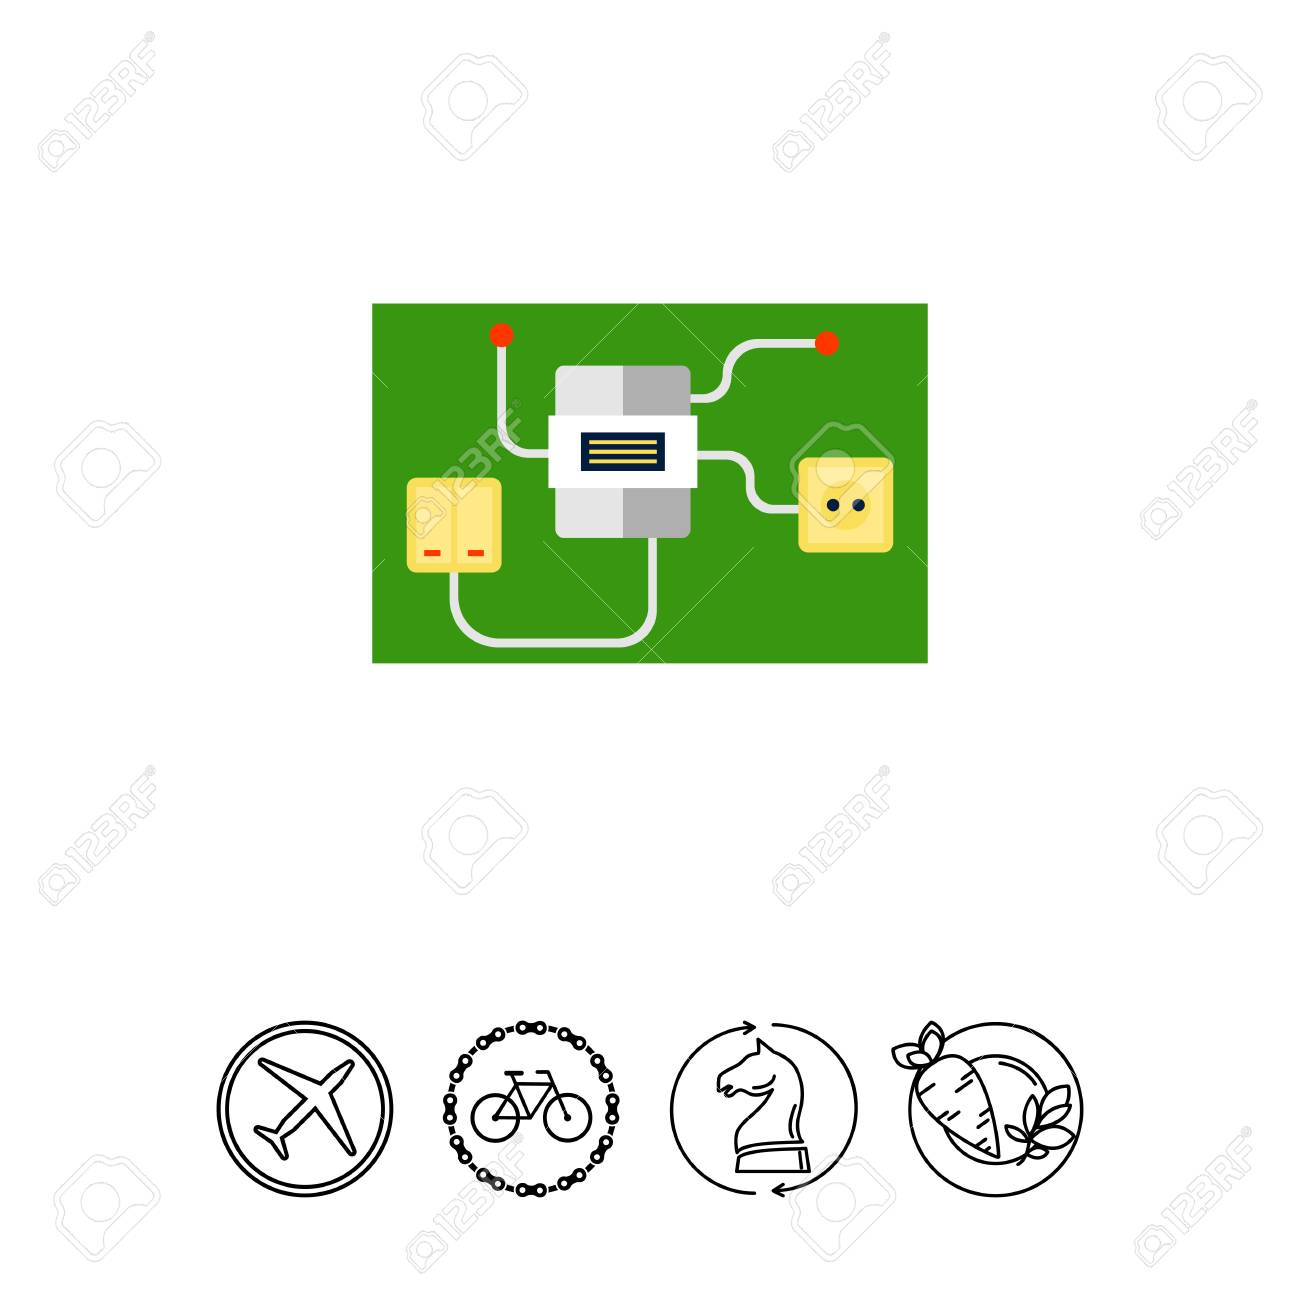 Light Switch And Socket Connected To Electric Meter. Interior ...